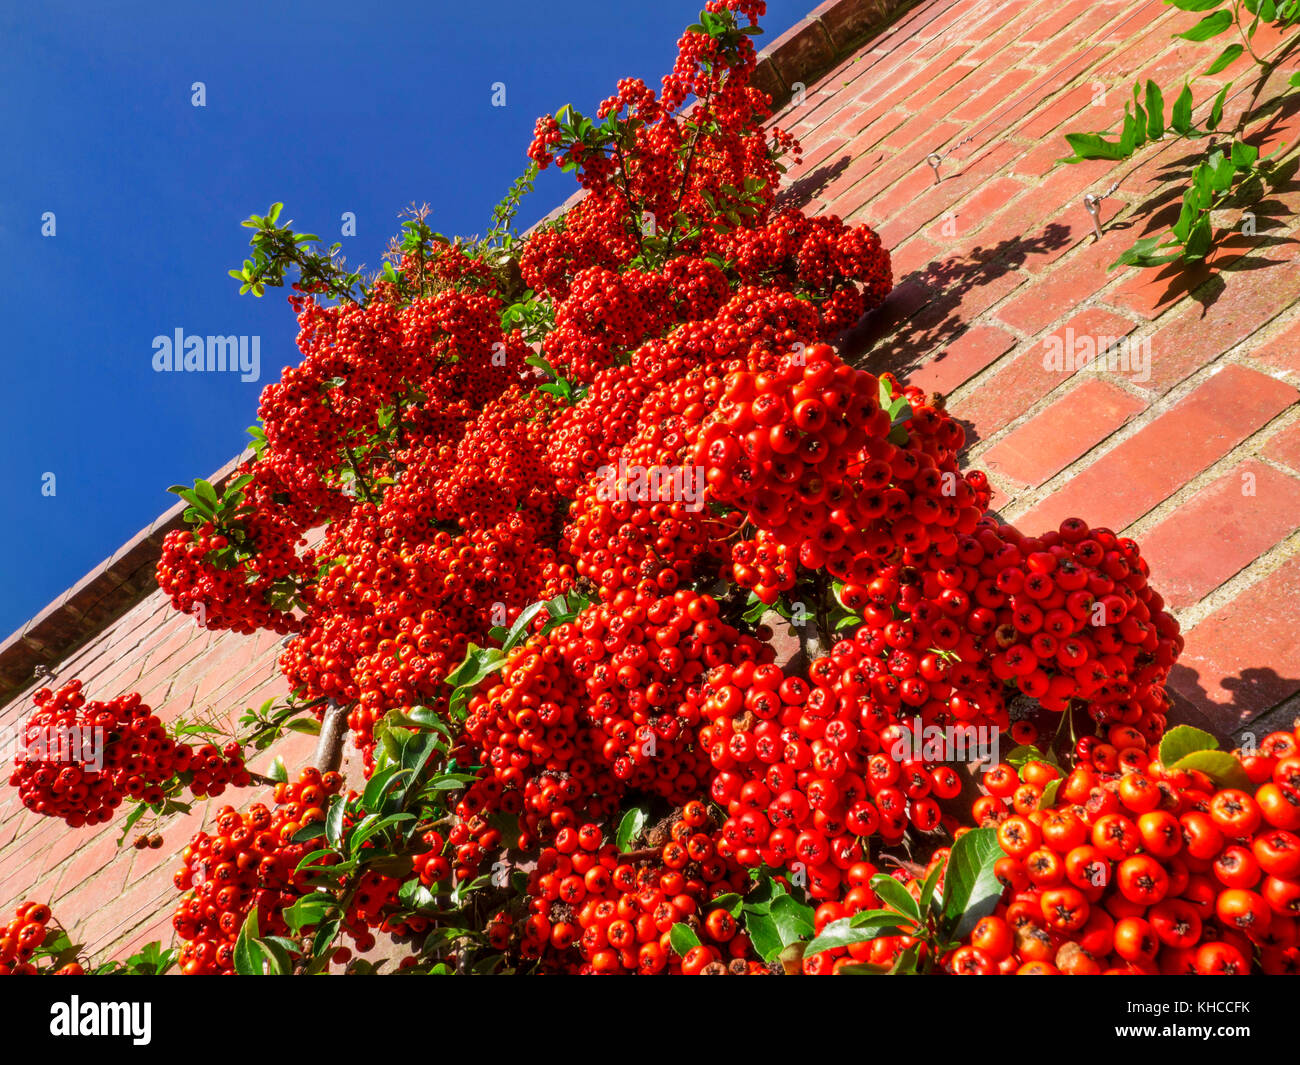 PYRACANTHA Saturated red berry 'pomes' of the Pyracantha evergreen shrub in the Rosaceae Firethorn family, - Stock Image